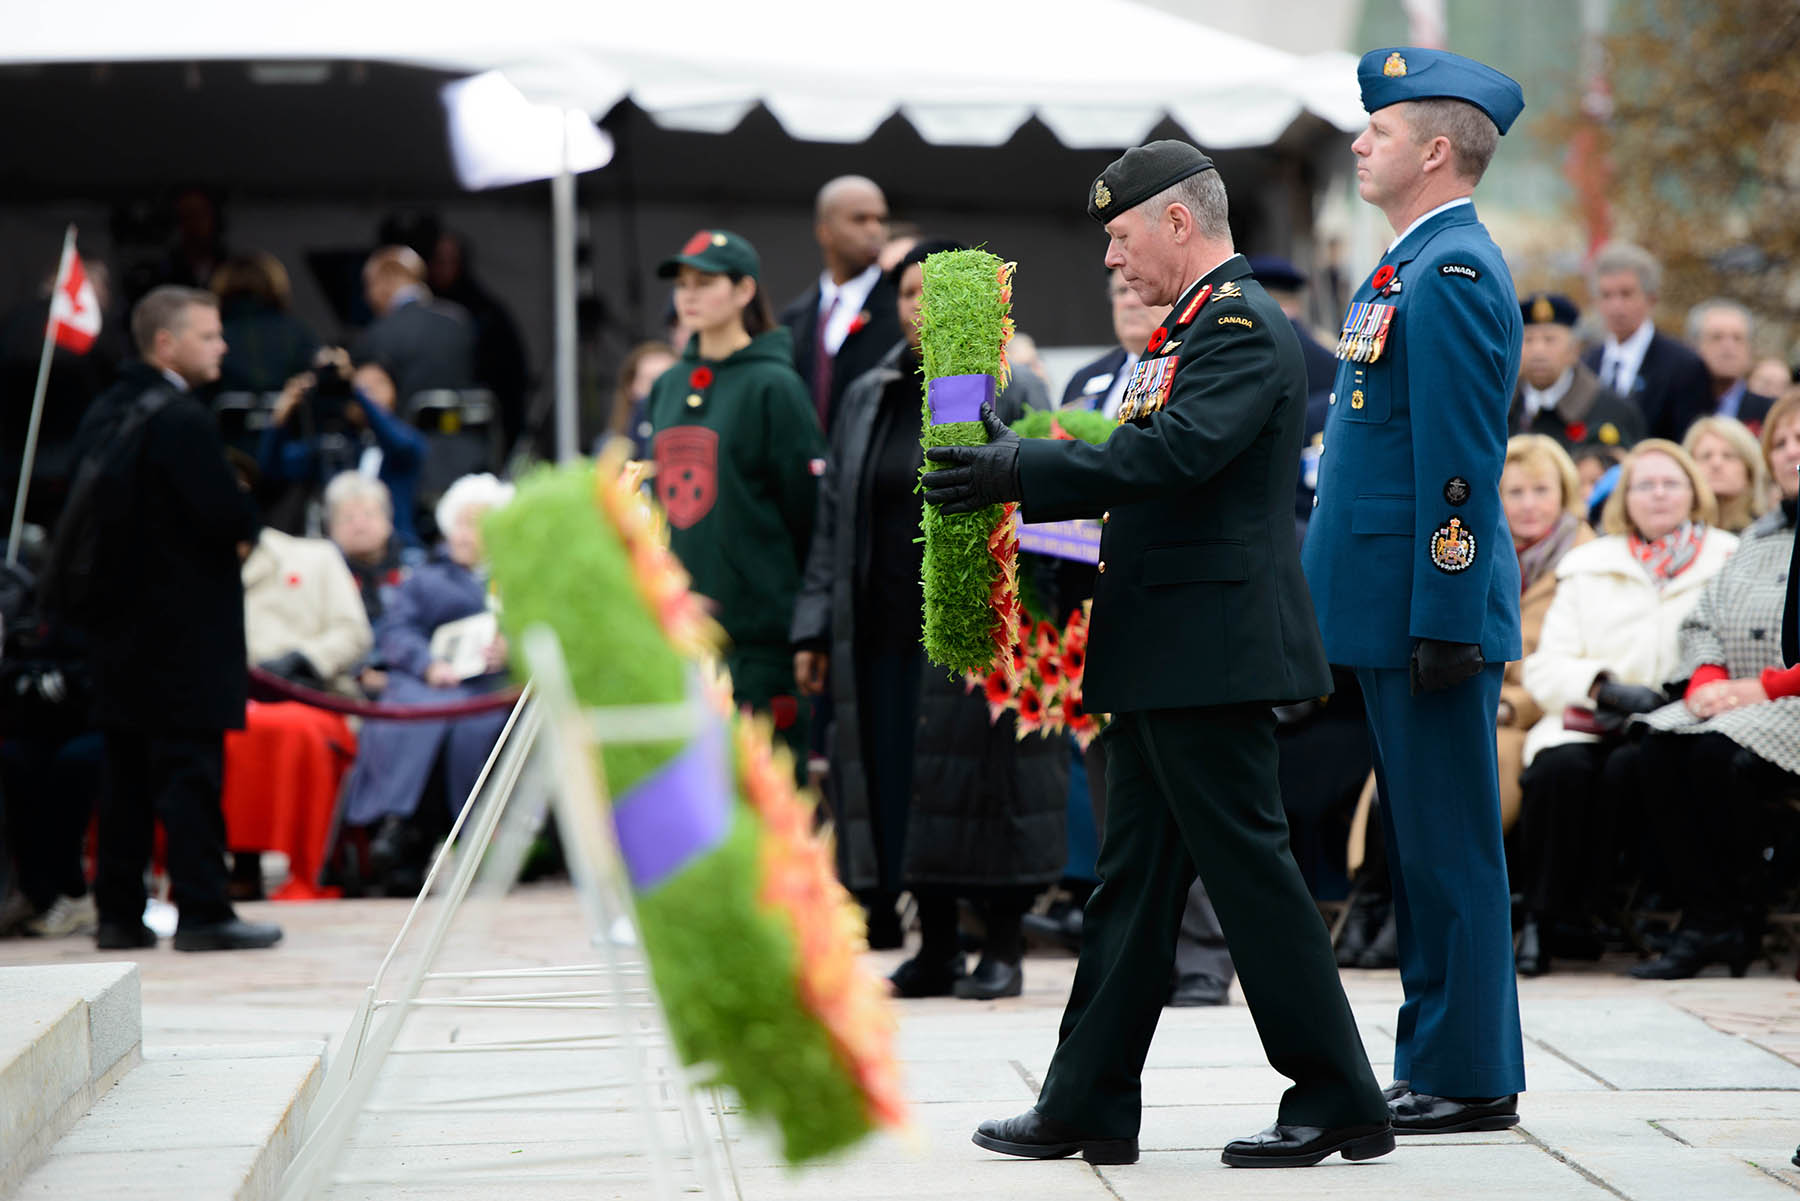 General Jonathan Vance (front), Chief of the Defence Staff, and Royal Canadian Air Force member Chief Warrant Officer Kevin West, the Canadian Forces Chief Warrant Officer, place a wreath on behalf of the Canadian Armed Forces during the Remembrance Day ceremony held at the National War Memorial in Ottawa, Ontario, on November 11, 2015. PHOTO: Master Corporal Daniel Merrell